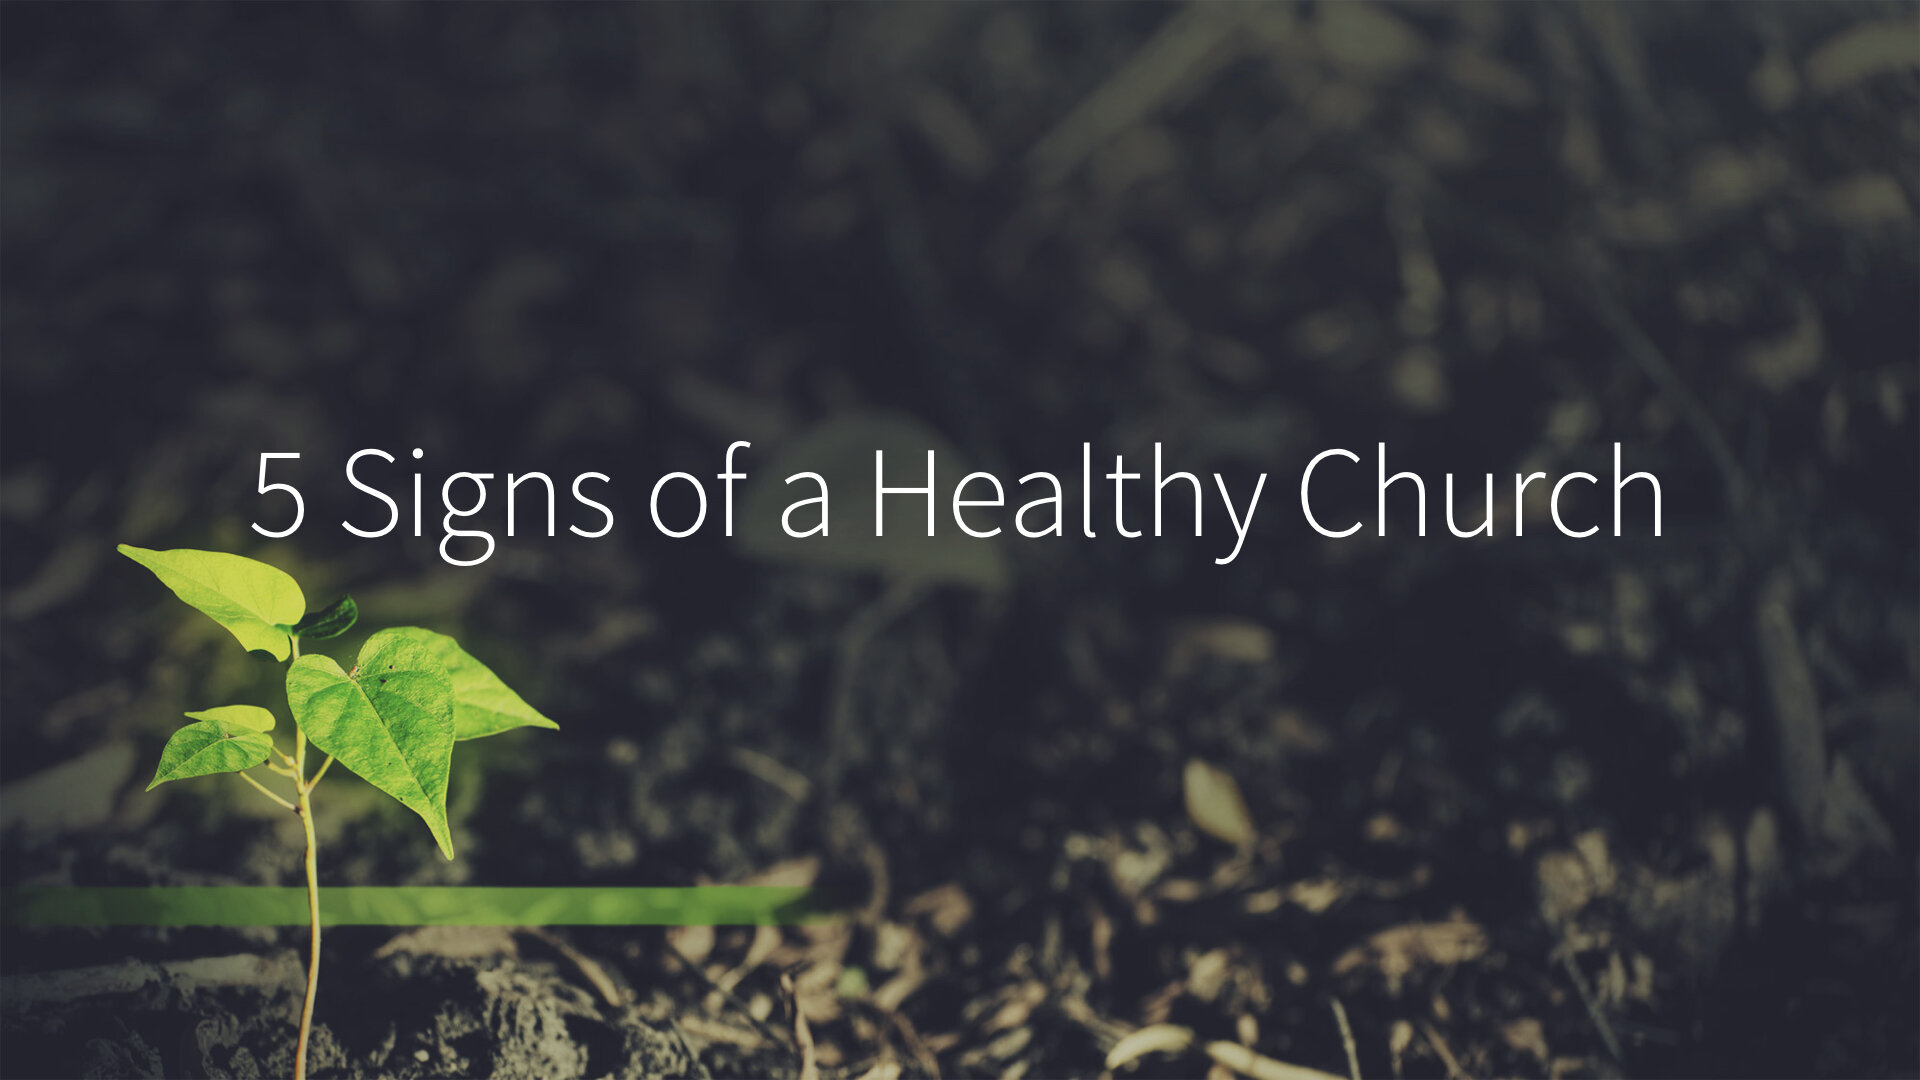 Revitalize - Week 3 - 5 Signs of a Healthy Church copy.009.jpeg